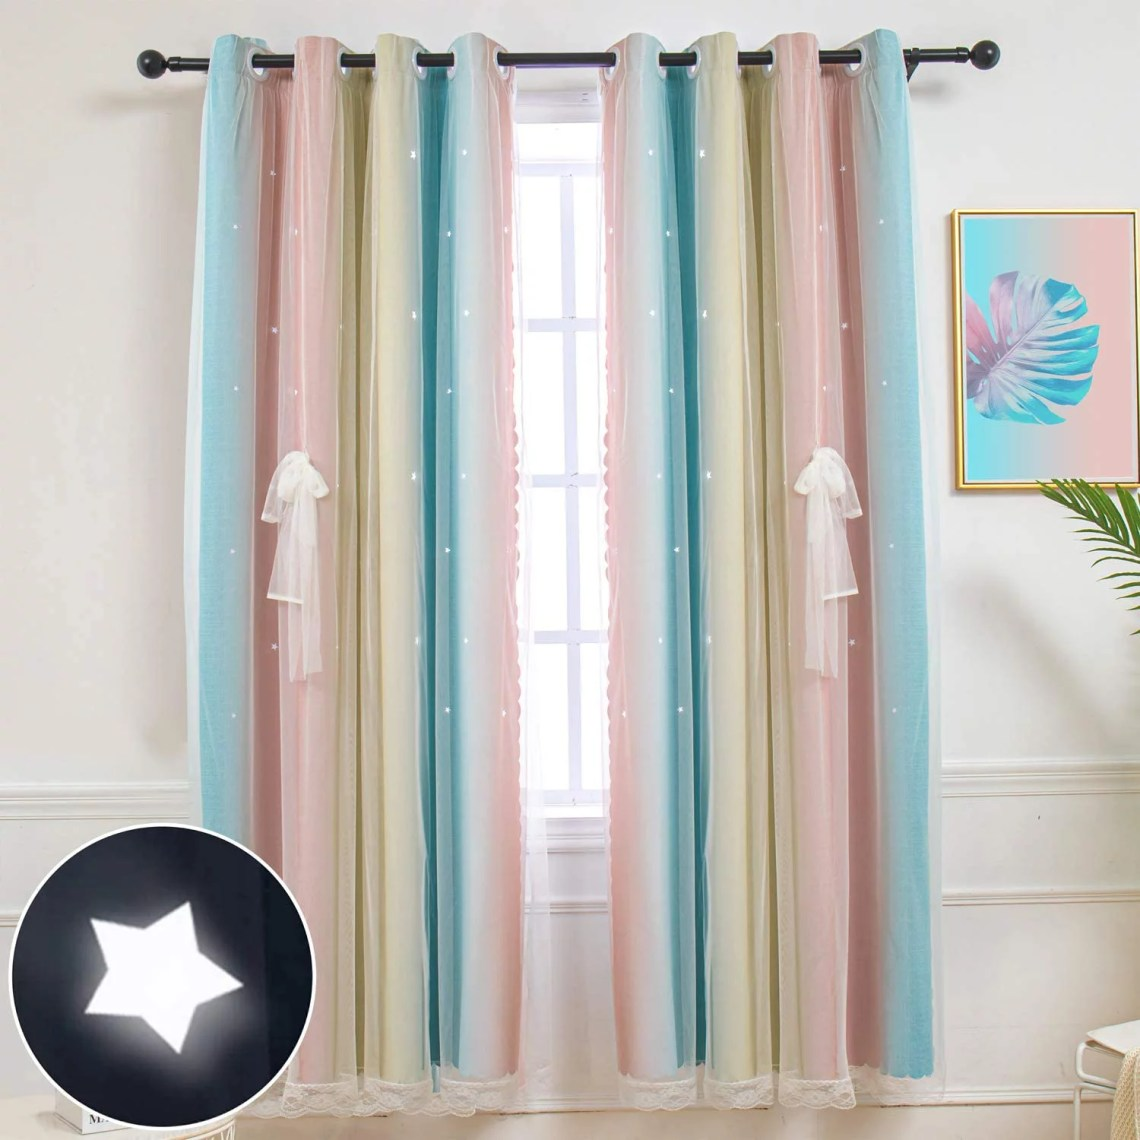 Star Curtains Stars Blackout Curtains For Kids Girls Bedroom Living Room Colorful Double Layer Star Cut Out Stripe Window Curtains 1 Panel 52w X 63l Pink Blue Walmart Com Walmart Com